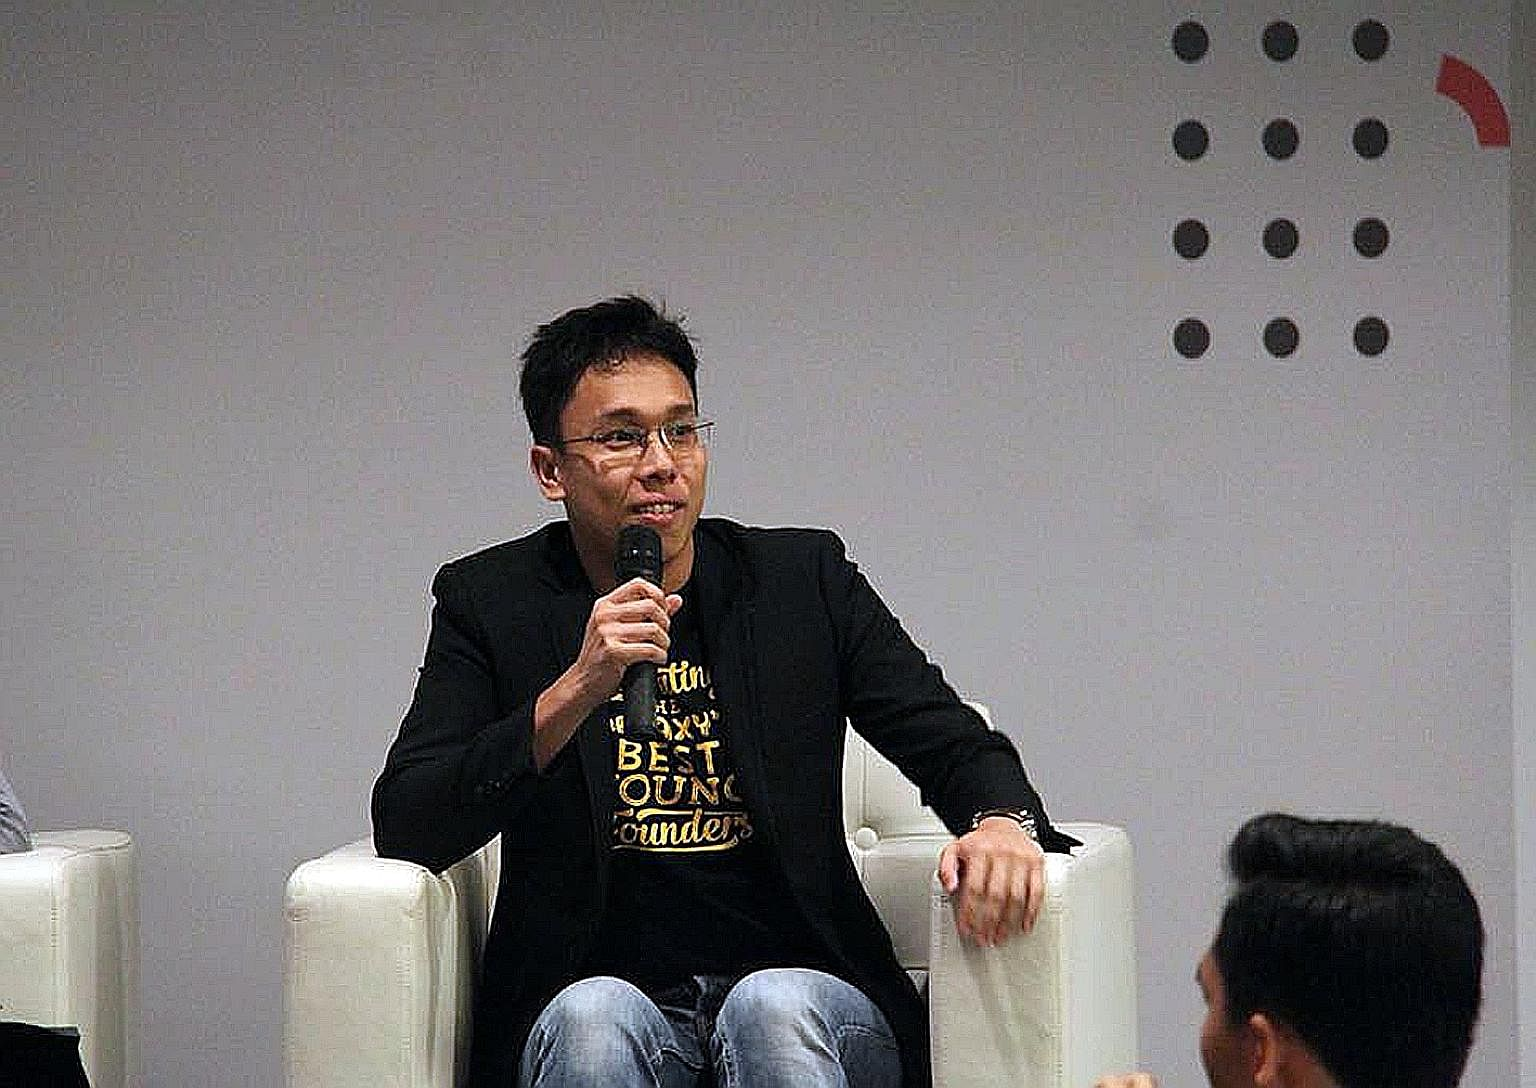 For Mr Khairul Rusydi, co-founder of Reactor, home is a place where people can help one another and form a community.